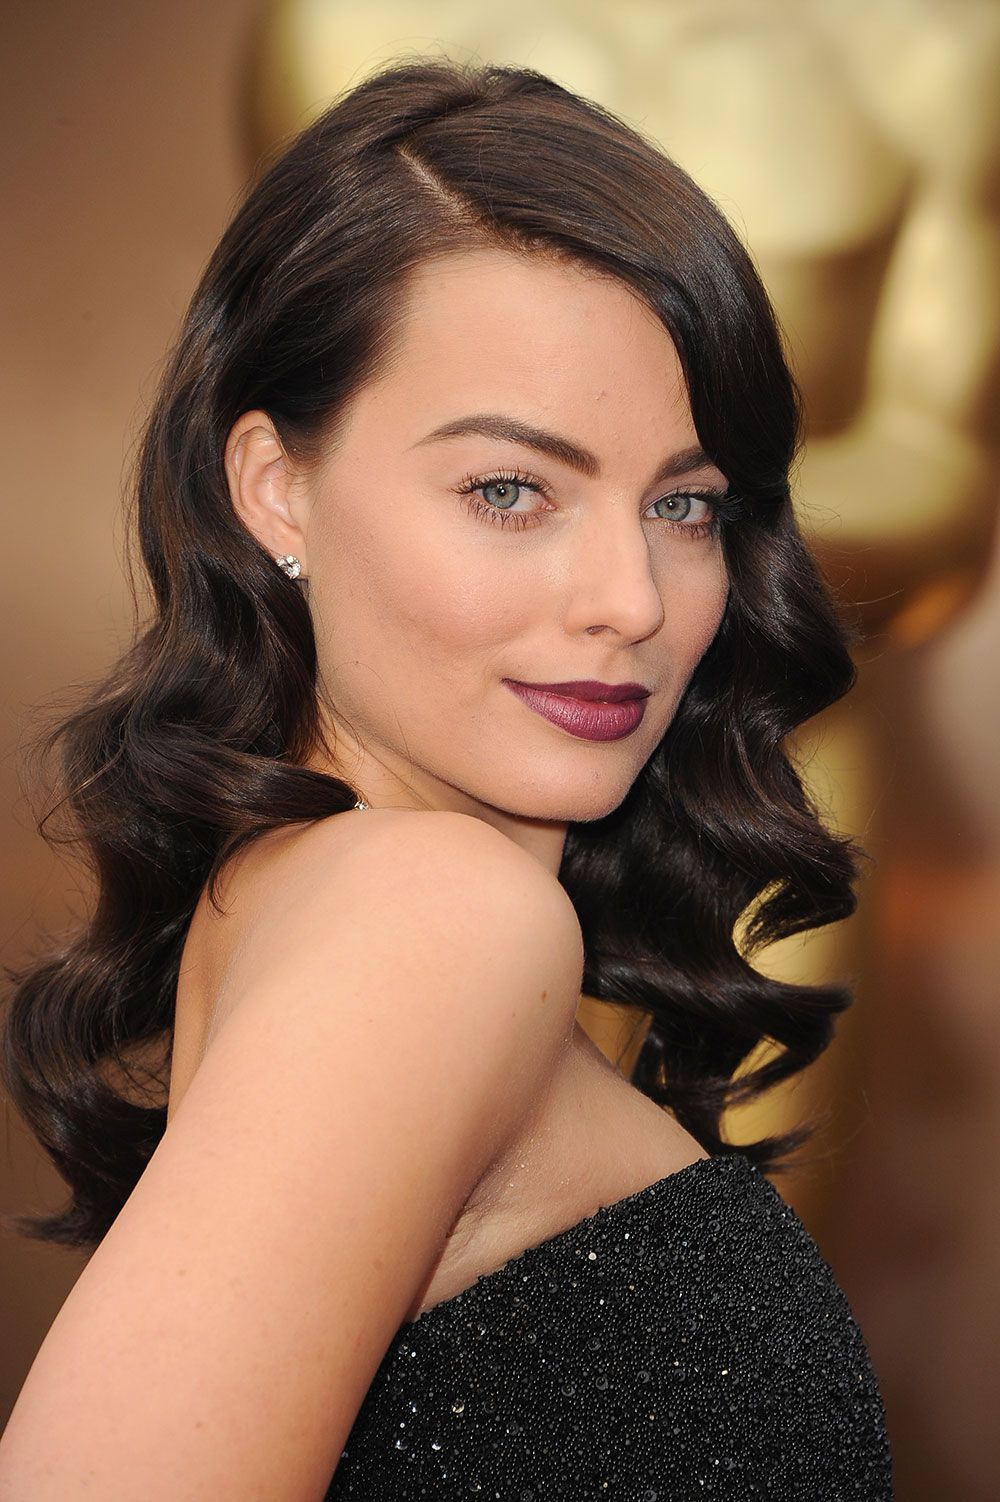 Elegant side hairstyles - Red Carpet Looks Margot Robbie The Half And Half Elegant Side Sweep